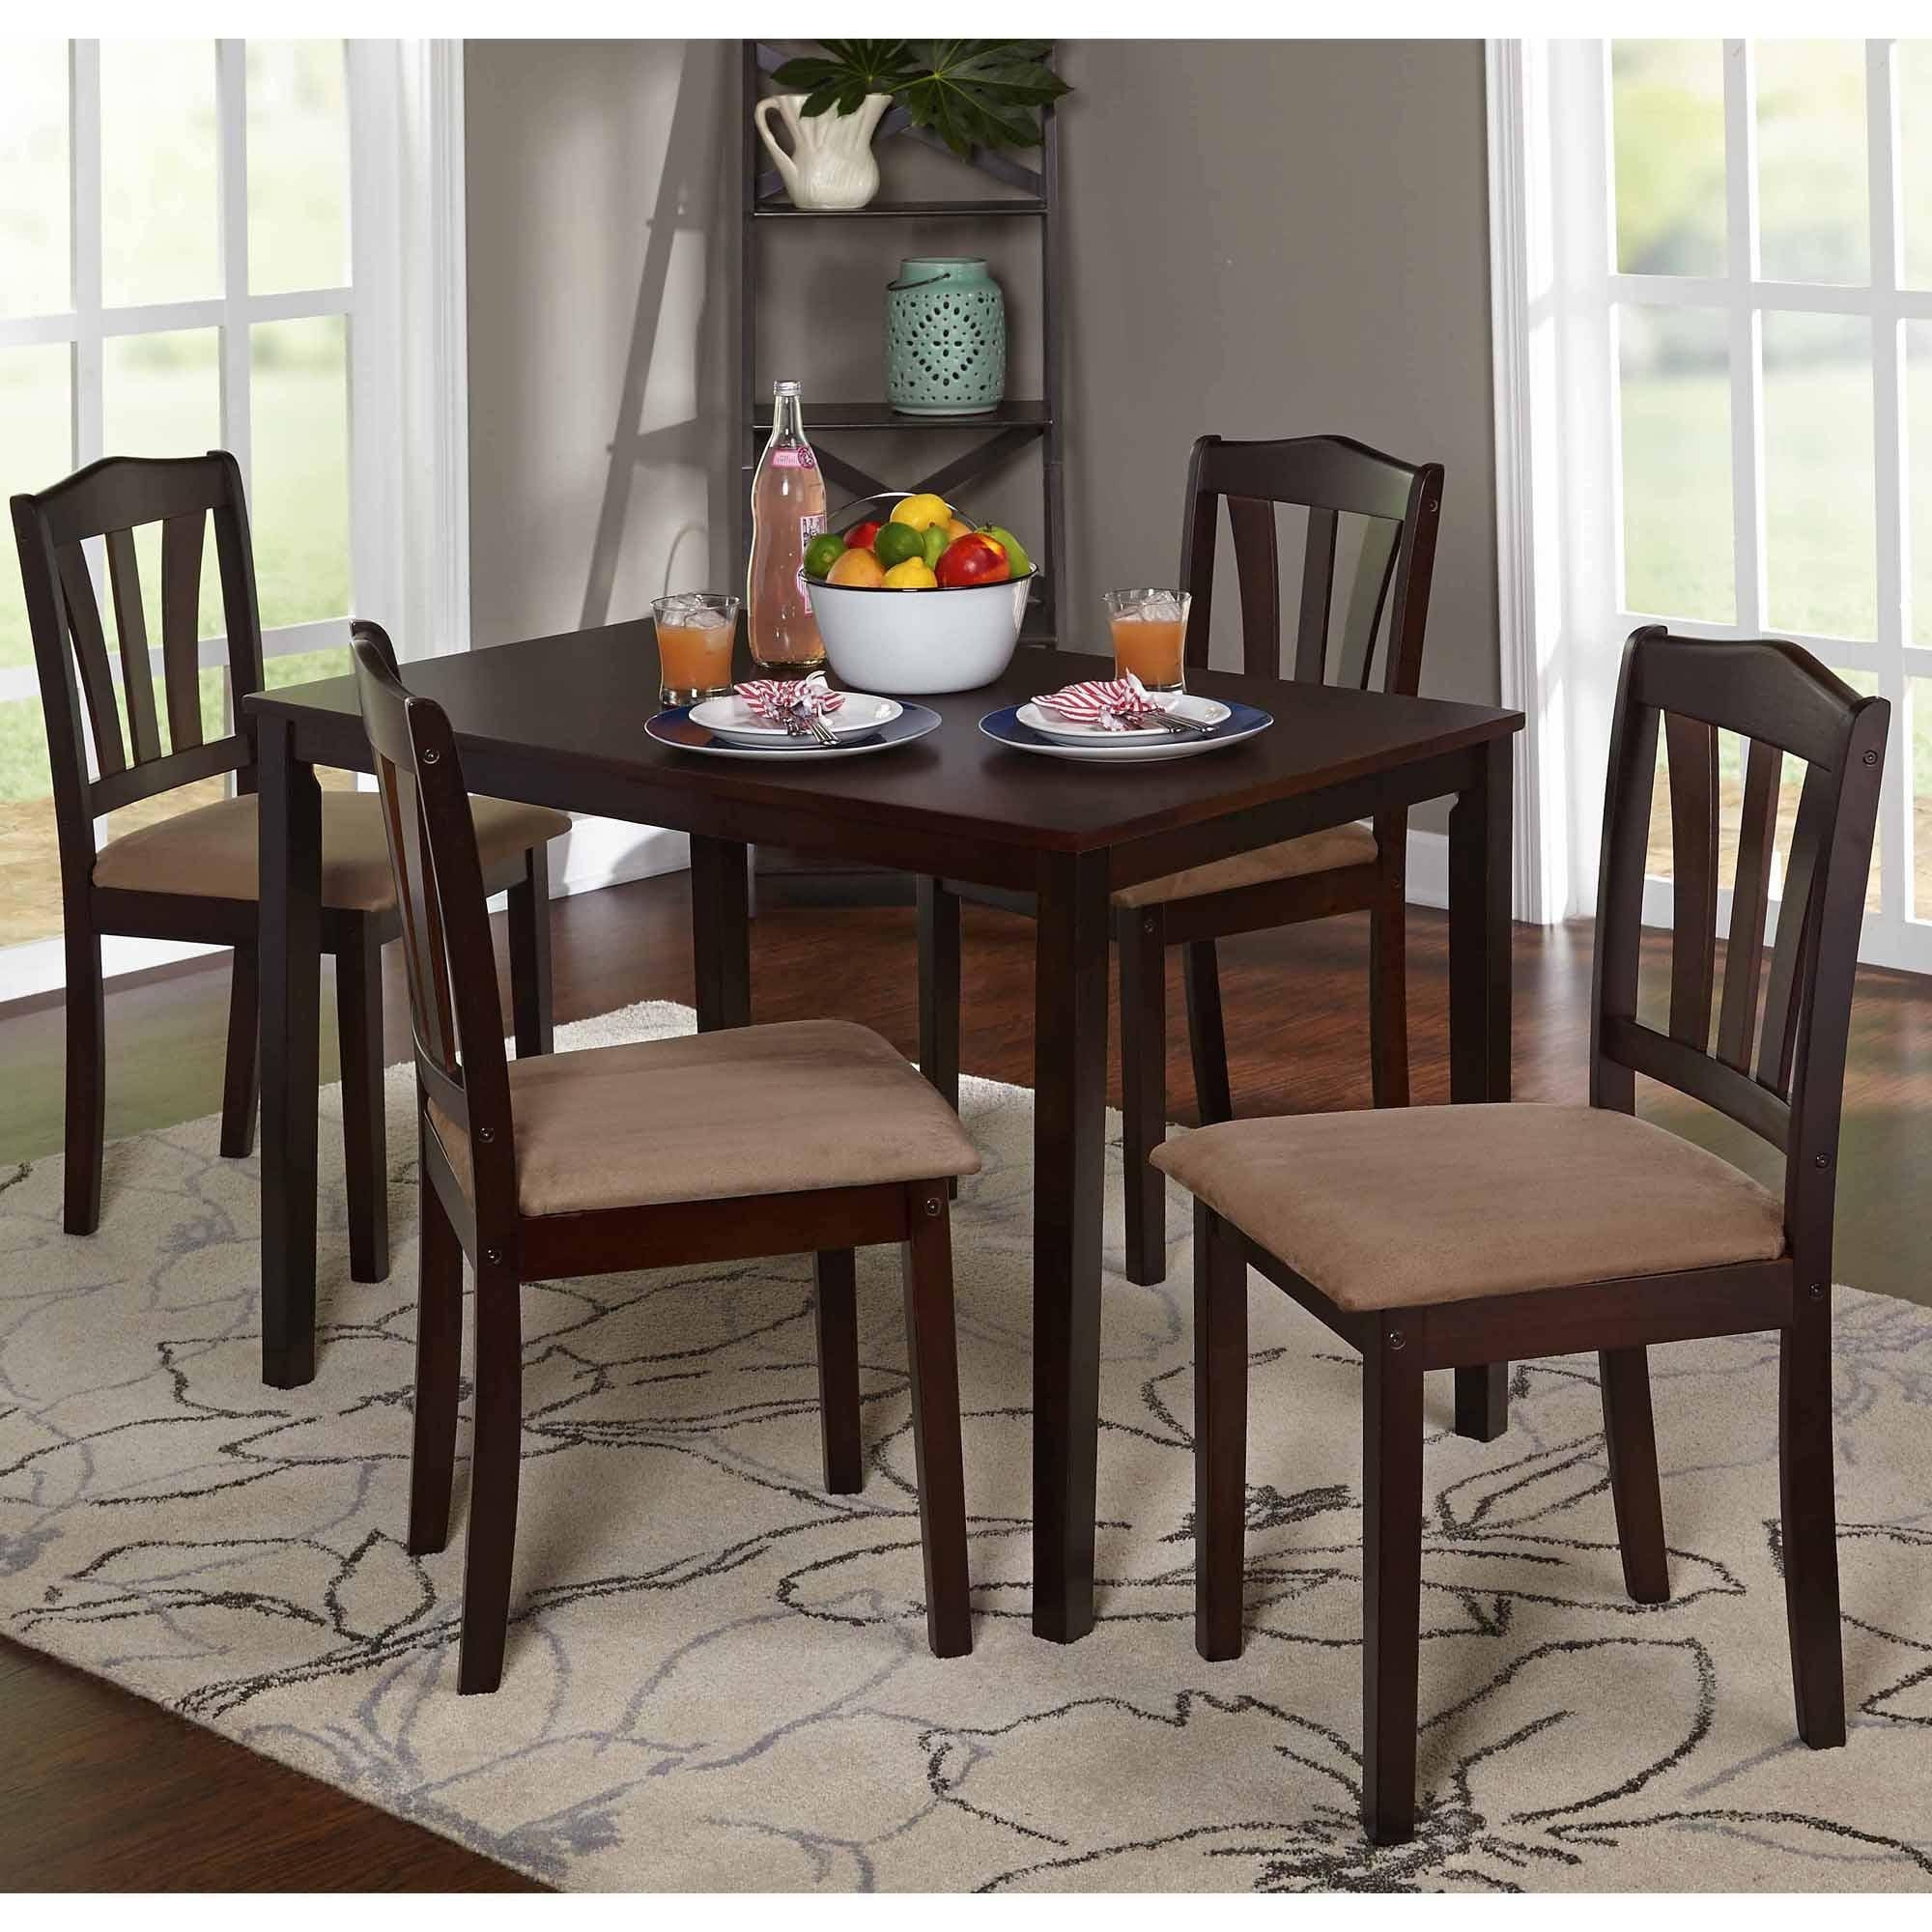 Most Recent Dining Sets With Metropolitan 5 Piece Dining Set, Multiple Colors – Walmart (View 16 of 25)